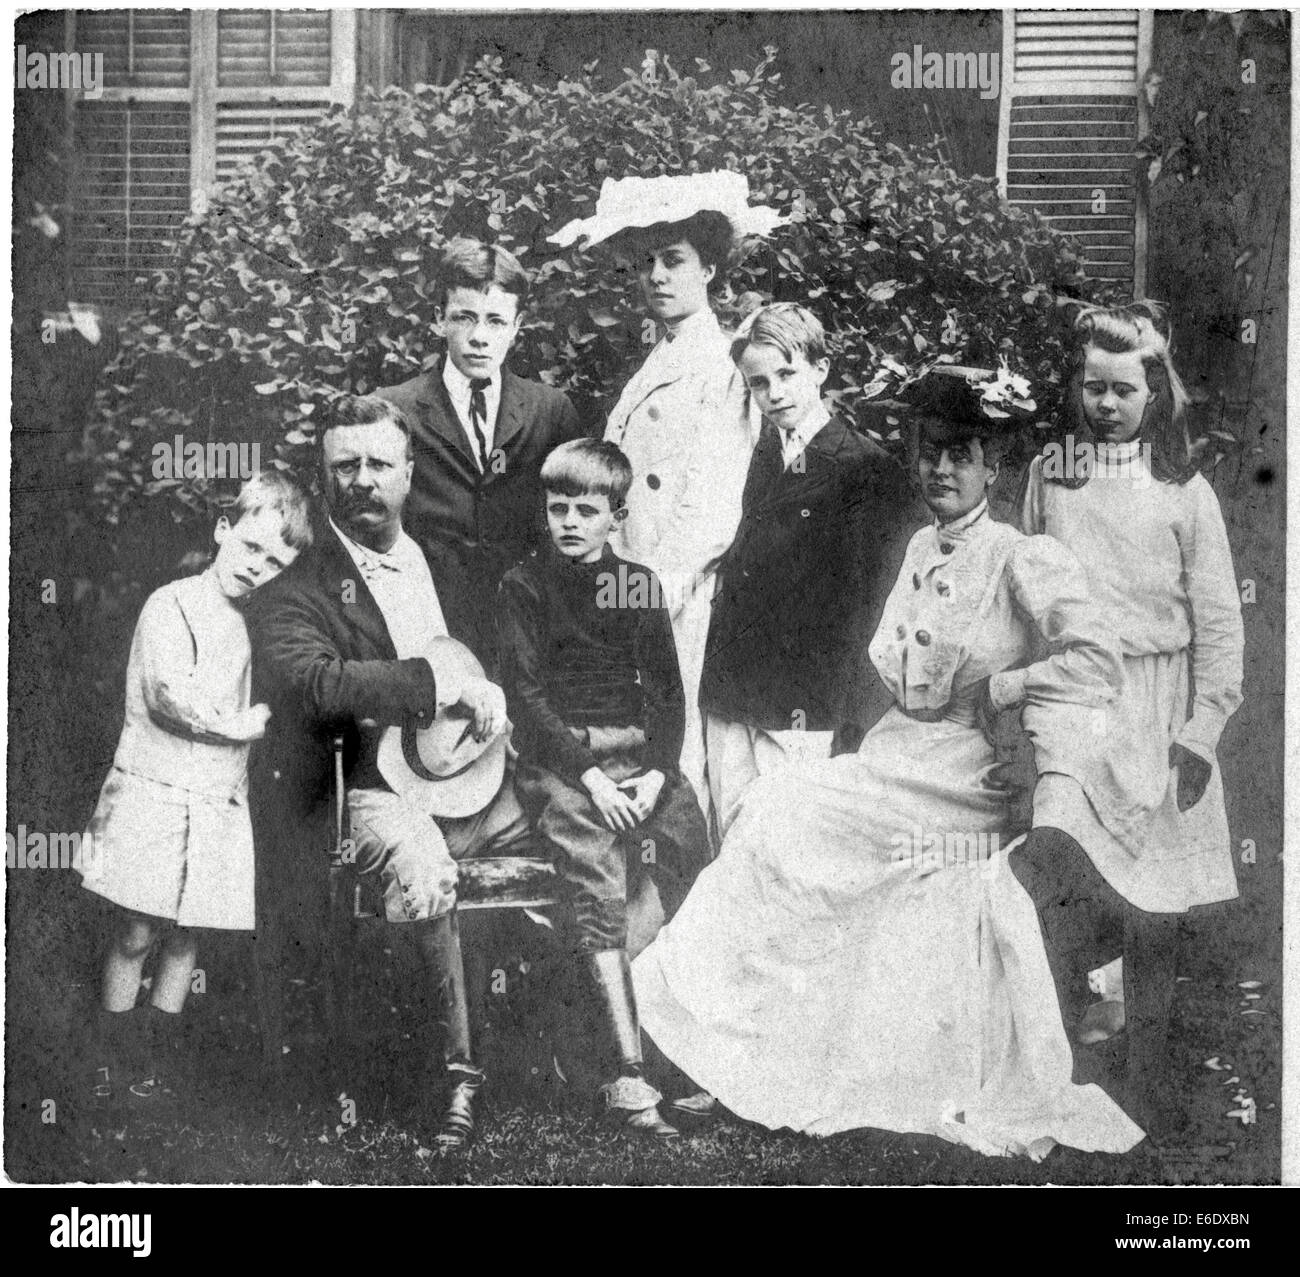 U.S. President Theodore Roosevelt and Family, Portrait, 1904 - Stock Image